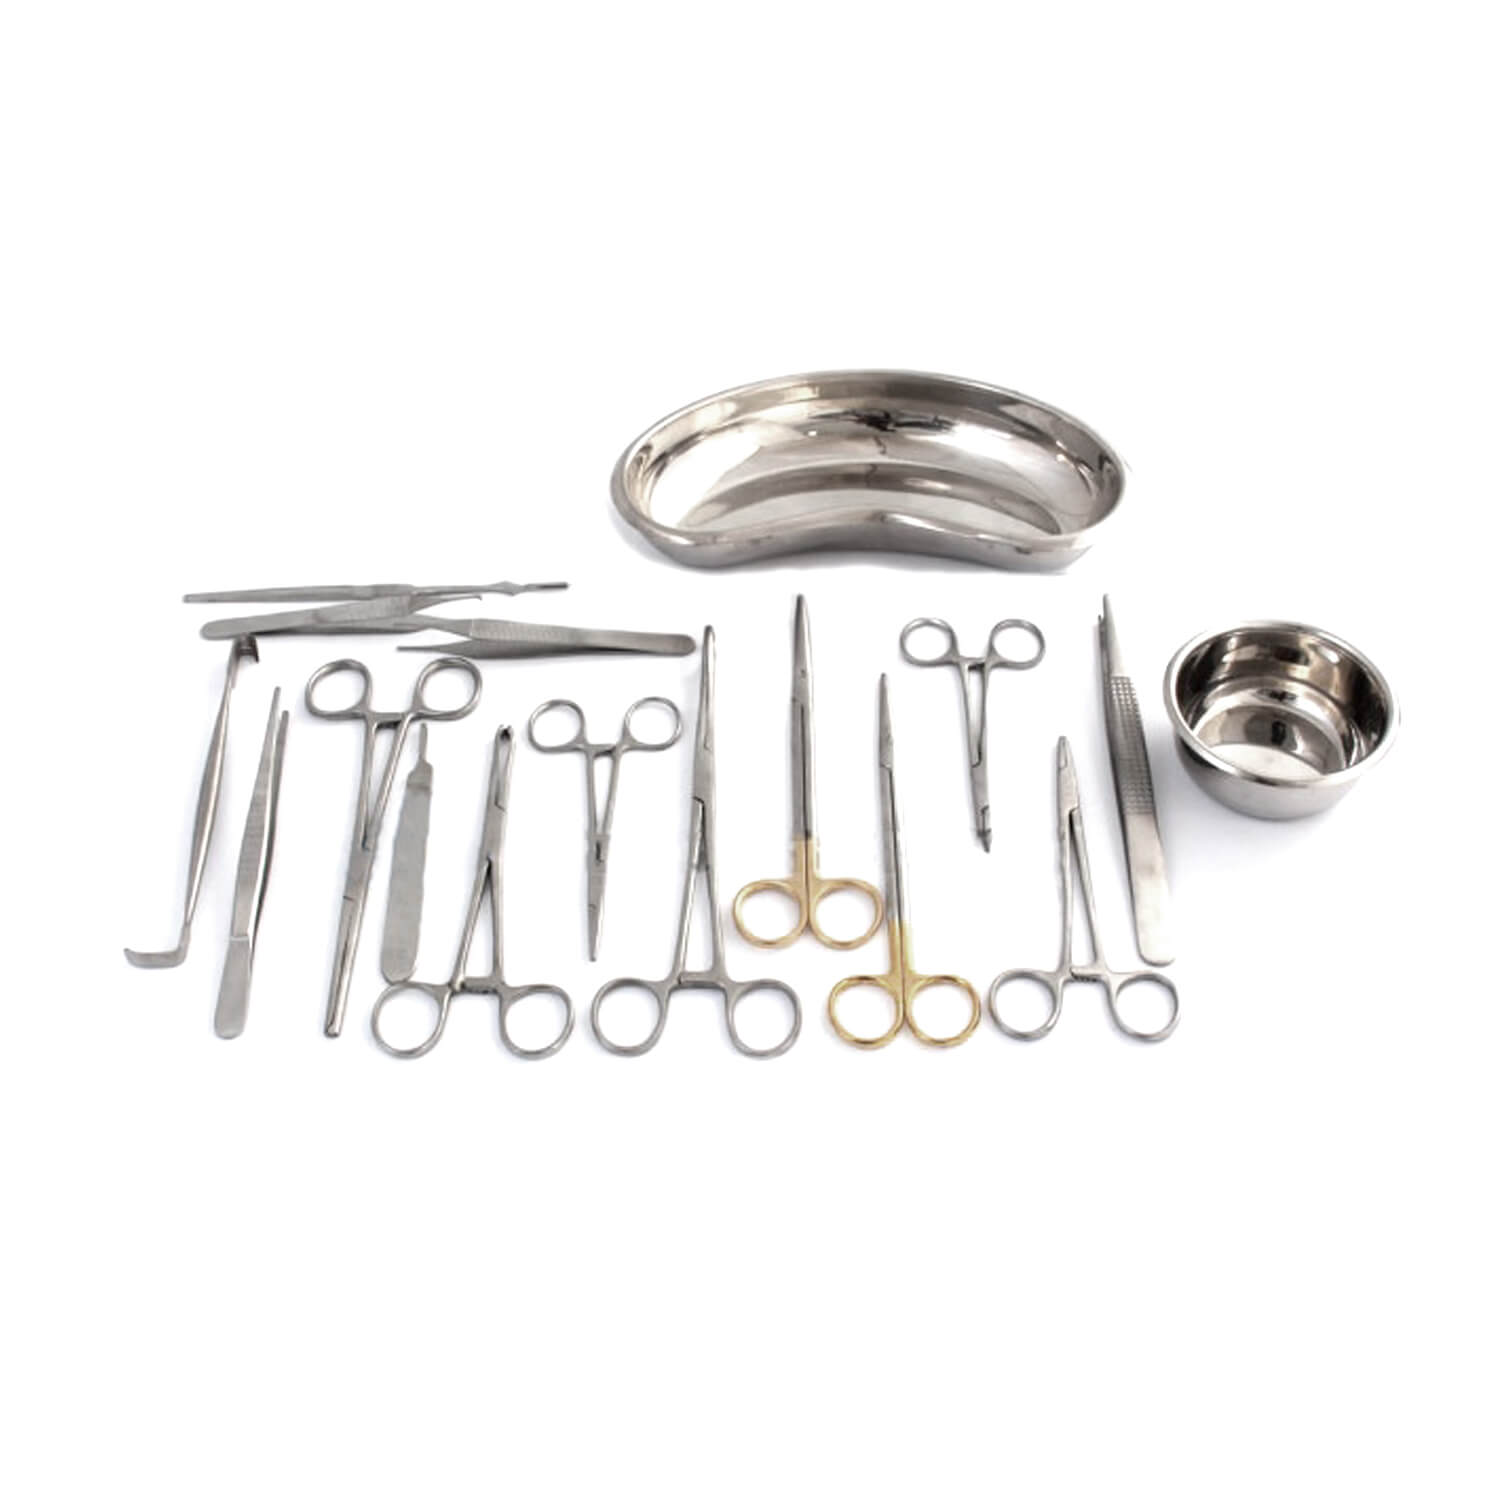 Orthopedic Minor Set